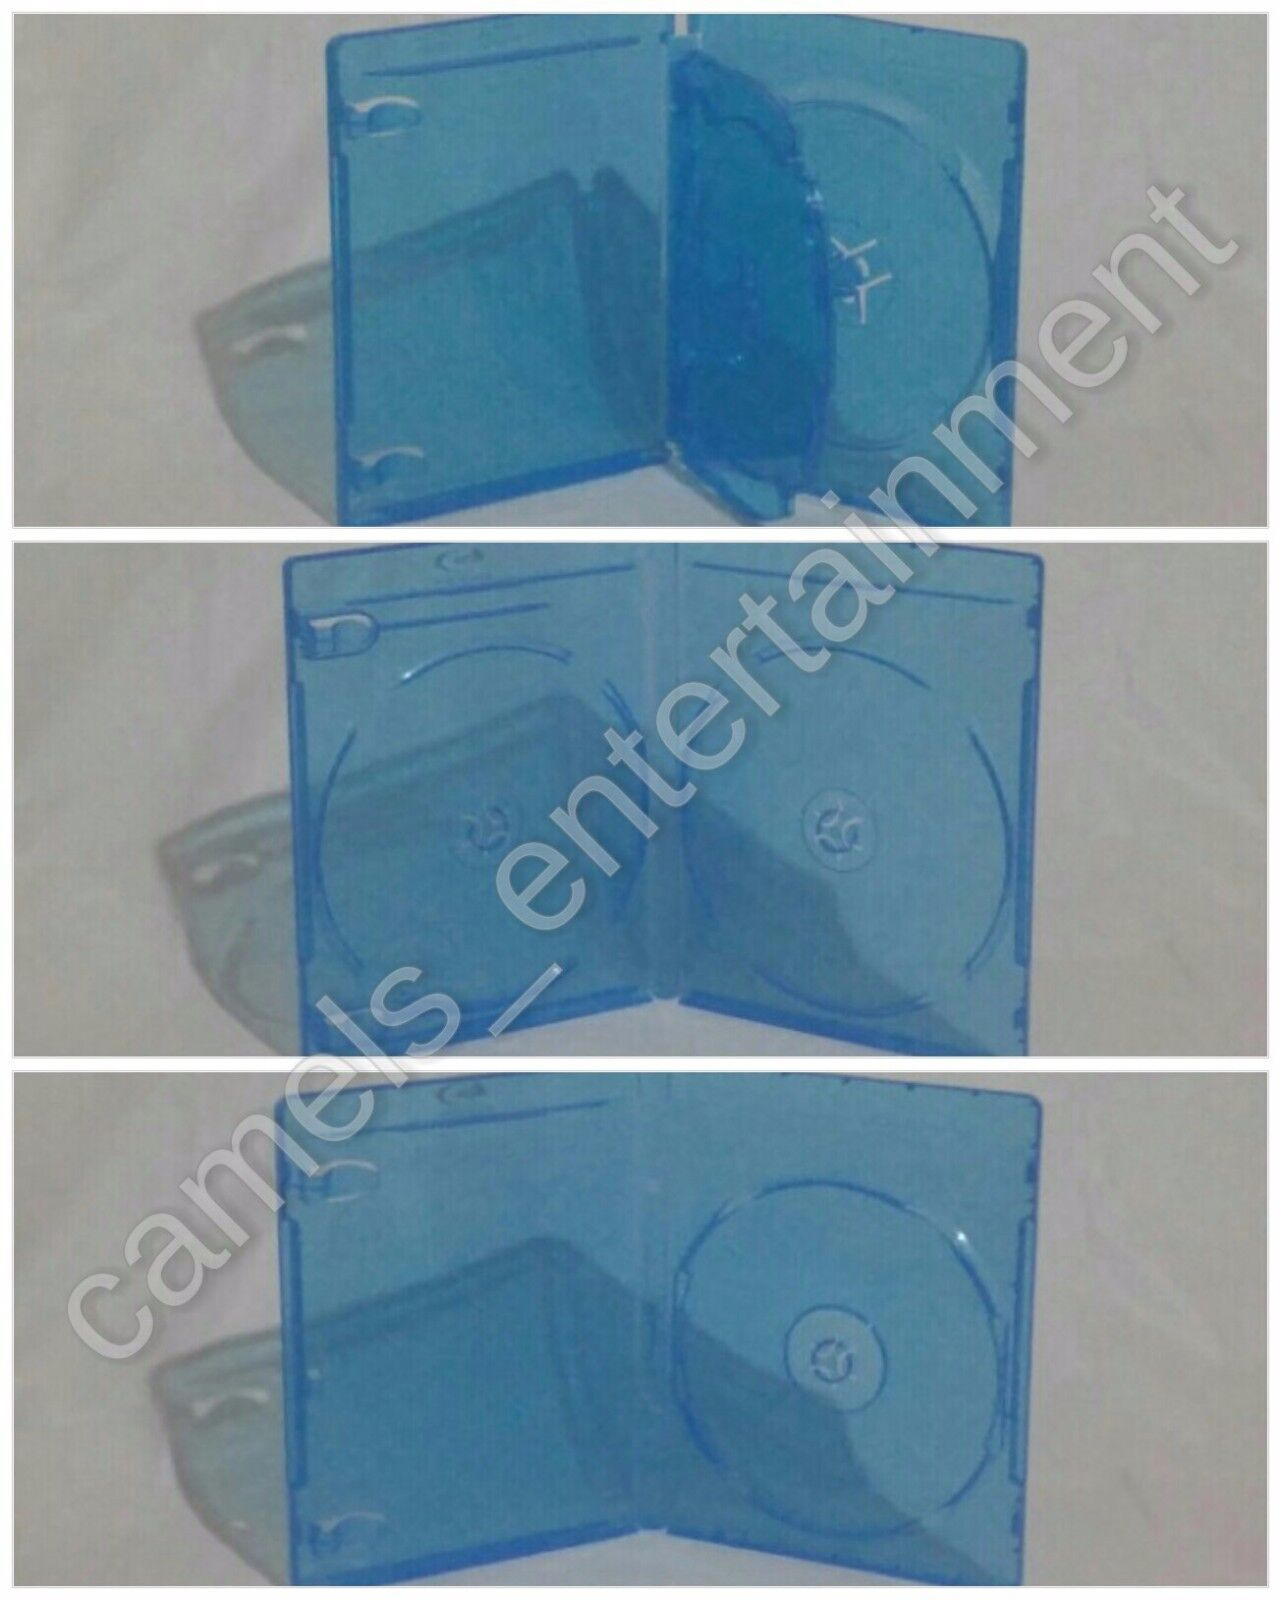 Blu-ray Case Replacement w/ LOGO (1-Disc / 2-Disc / 3-Disc Holder) NEW